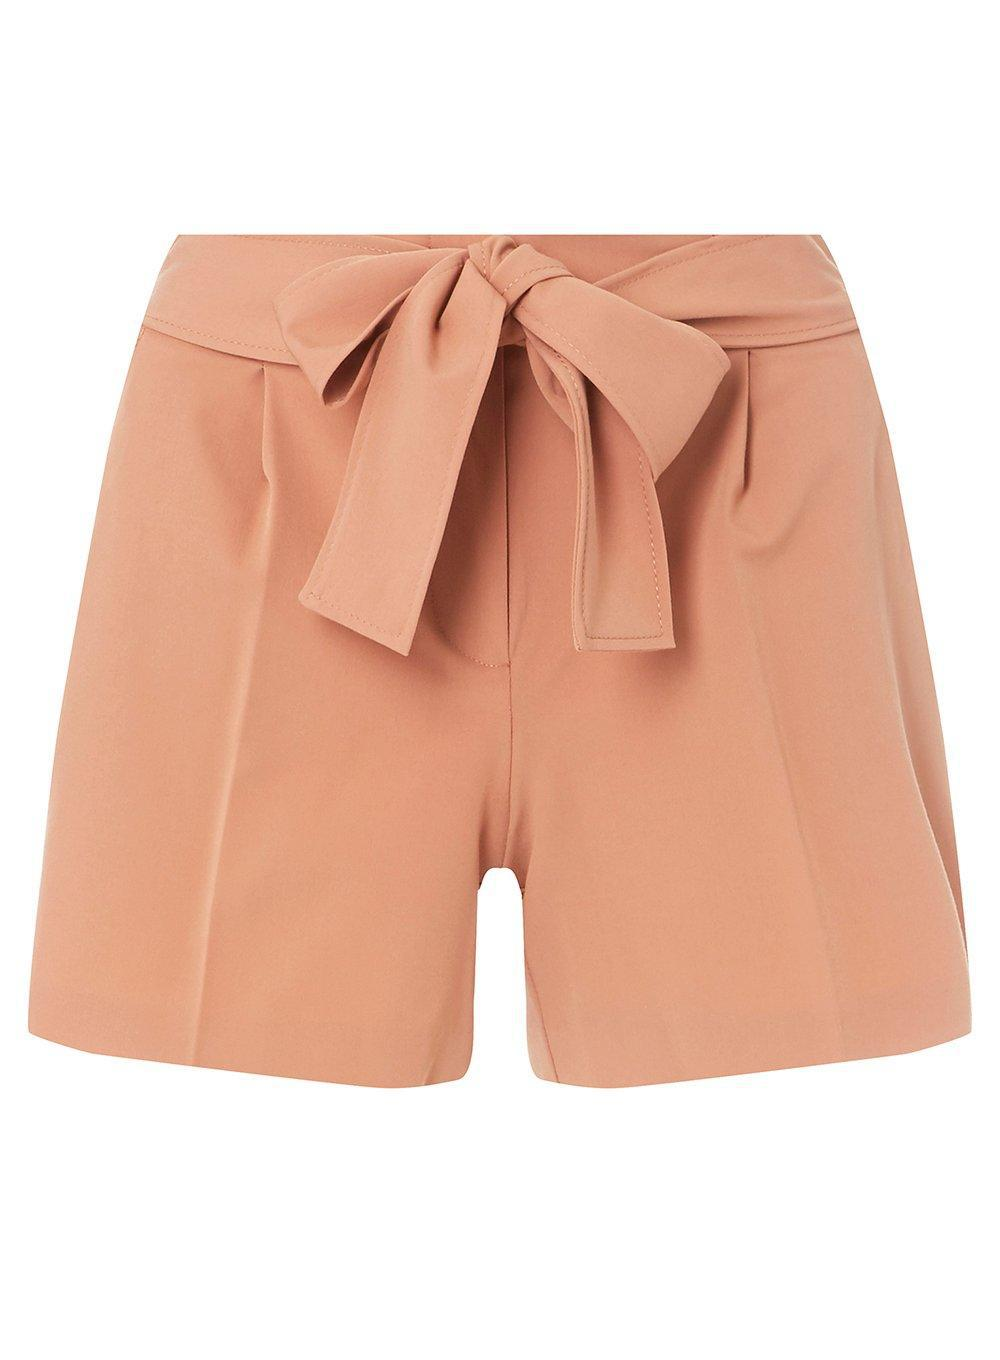 Dorothy Perkins Womens Blush Sash Tie Shorts- Outlet 2018 New New Arrival Outlet clvT0R